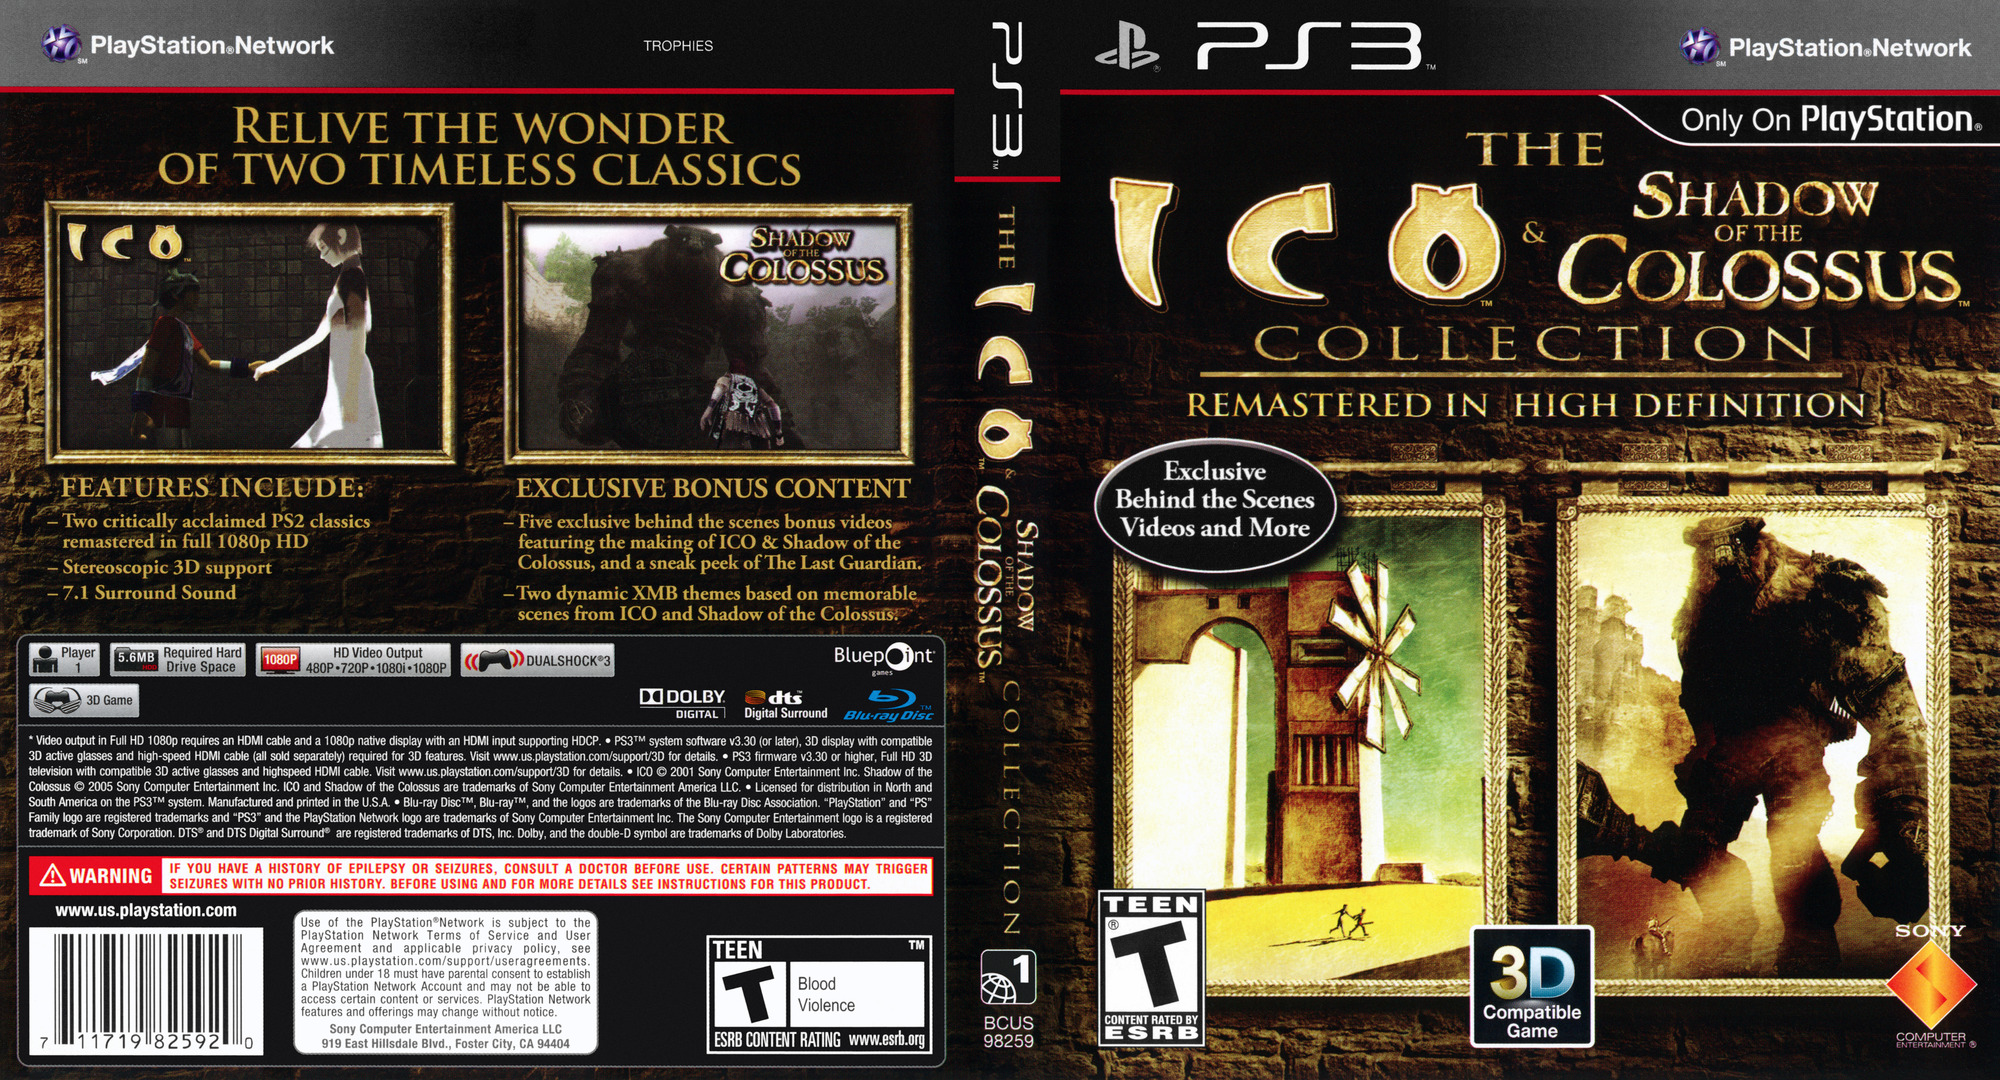 BCUS98259 - The ICO & Shadow of the Colossus Collection